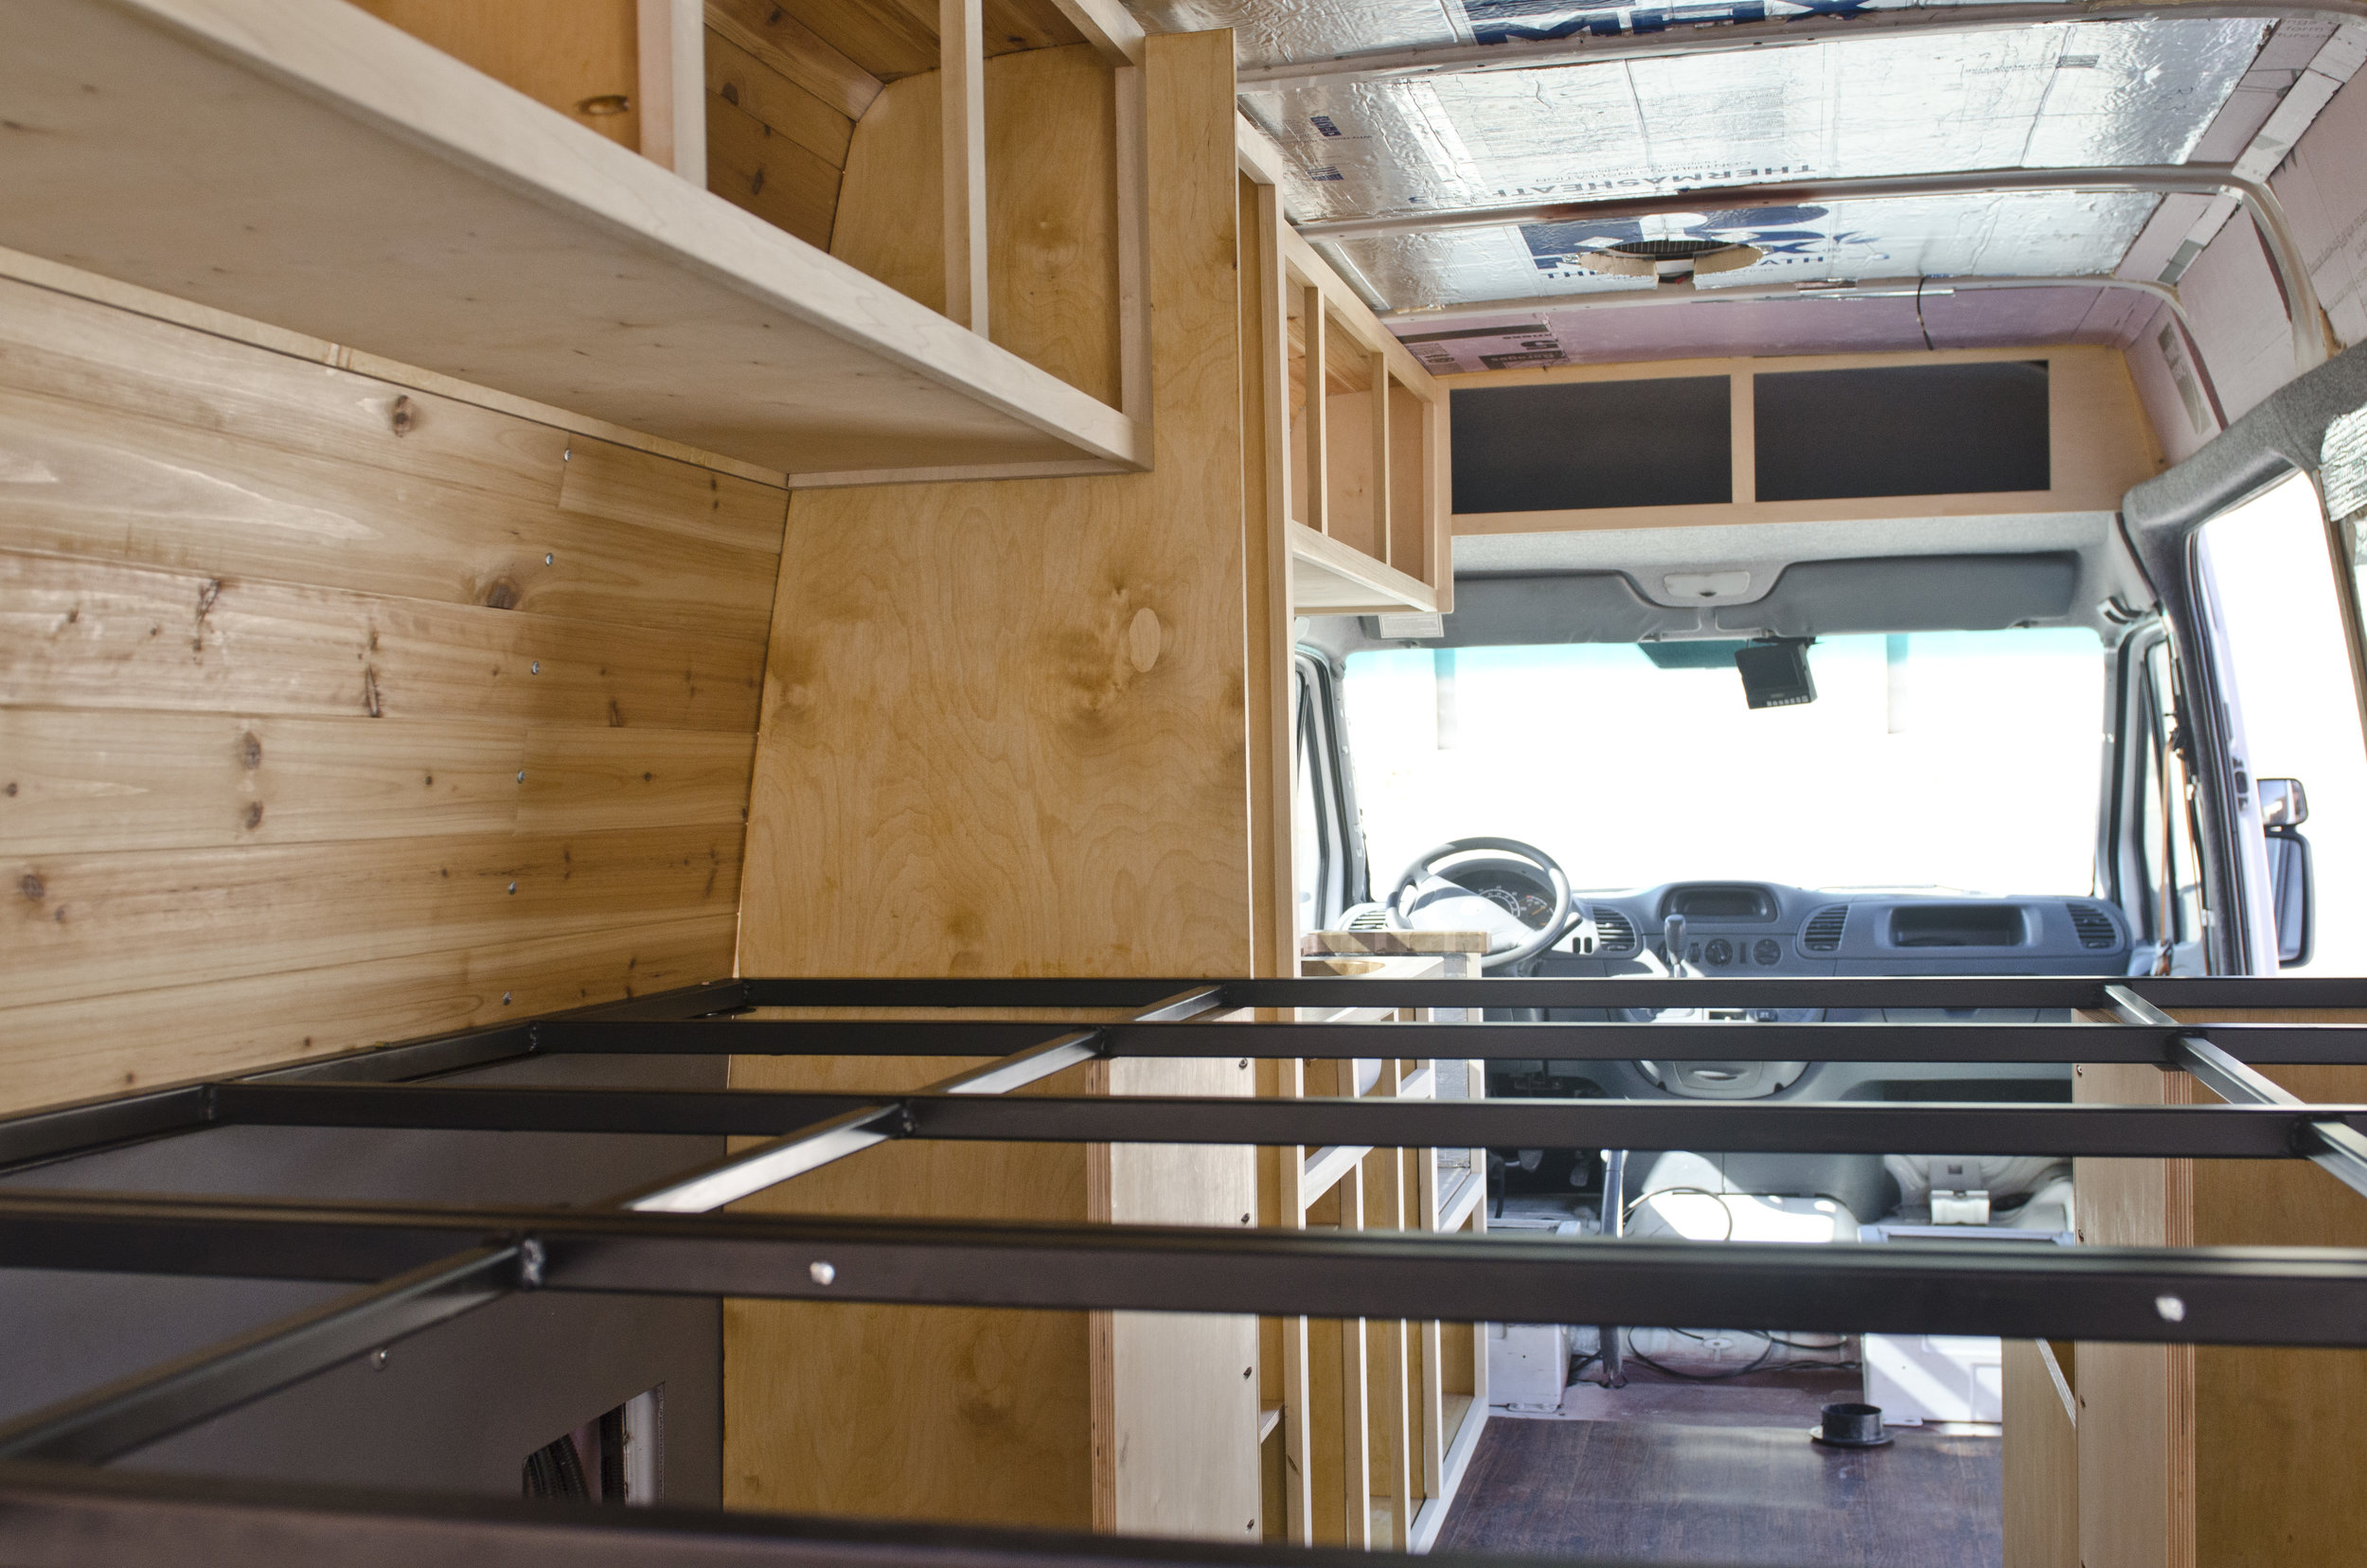 Cabinets framed out and bed frame welded and in place thanks to my amazing parents